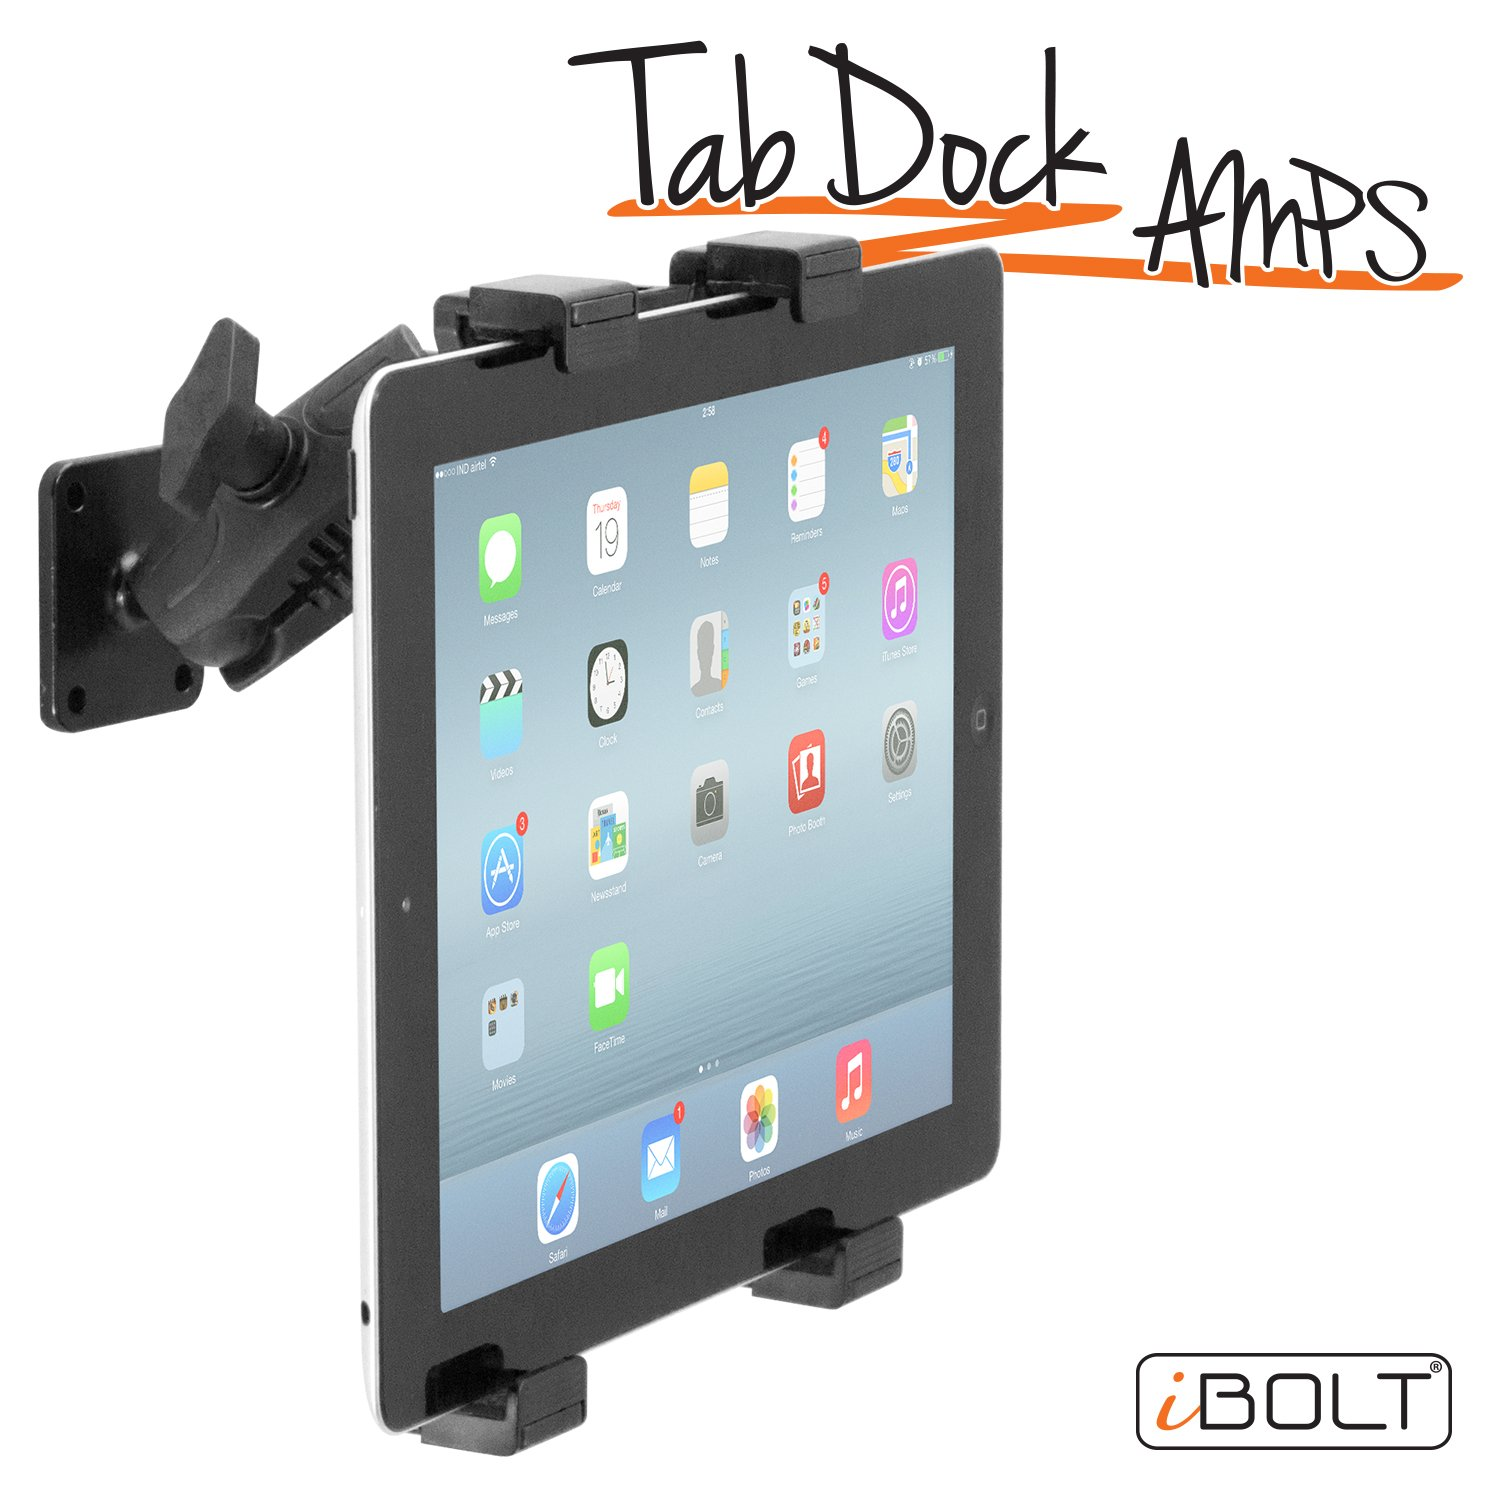 iBOLT TabDock AMPs - Heavy Duty Drill base mount for all 7'' - 10'' tablets (iPad, Samsung Tab) For Cars, Desks, Countertops: Great For Commercial Vehicles, Trucks, Homes, Schools, and Businesses